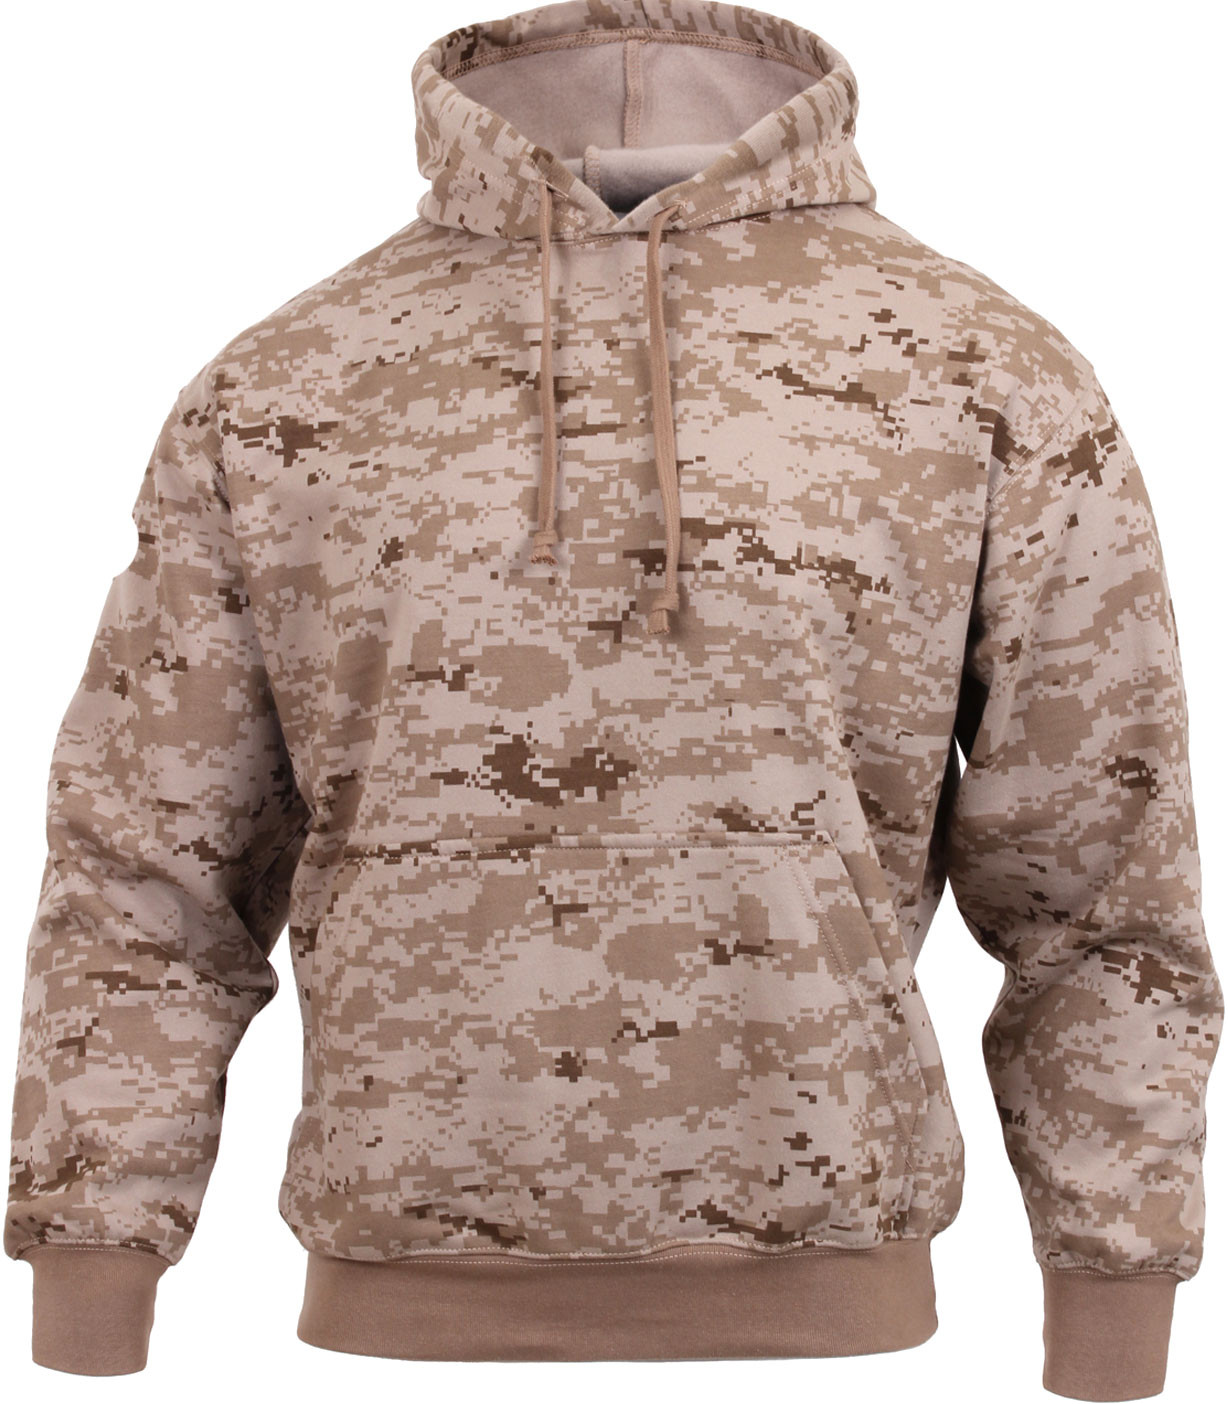 More Views. Desert Digital Camouflage Military Hooded Pullover Sweatshirt 4e19cd95ddc